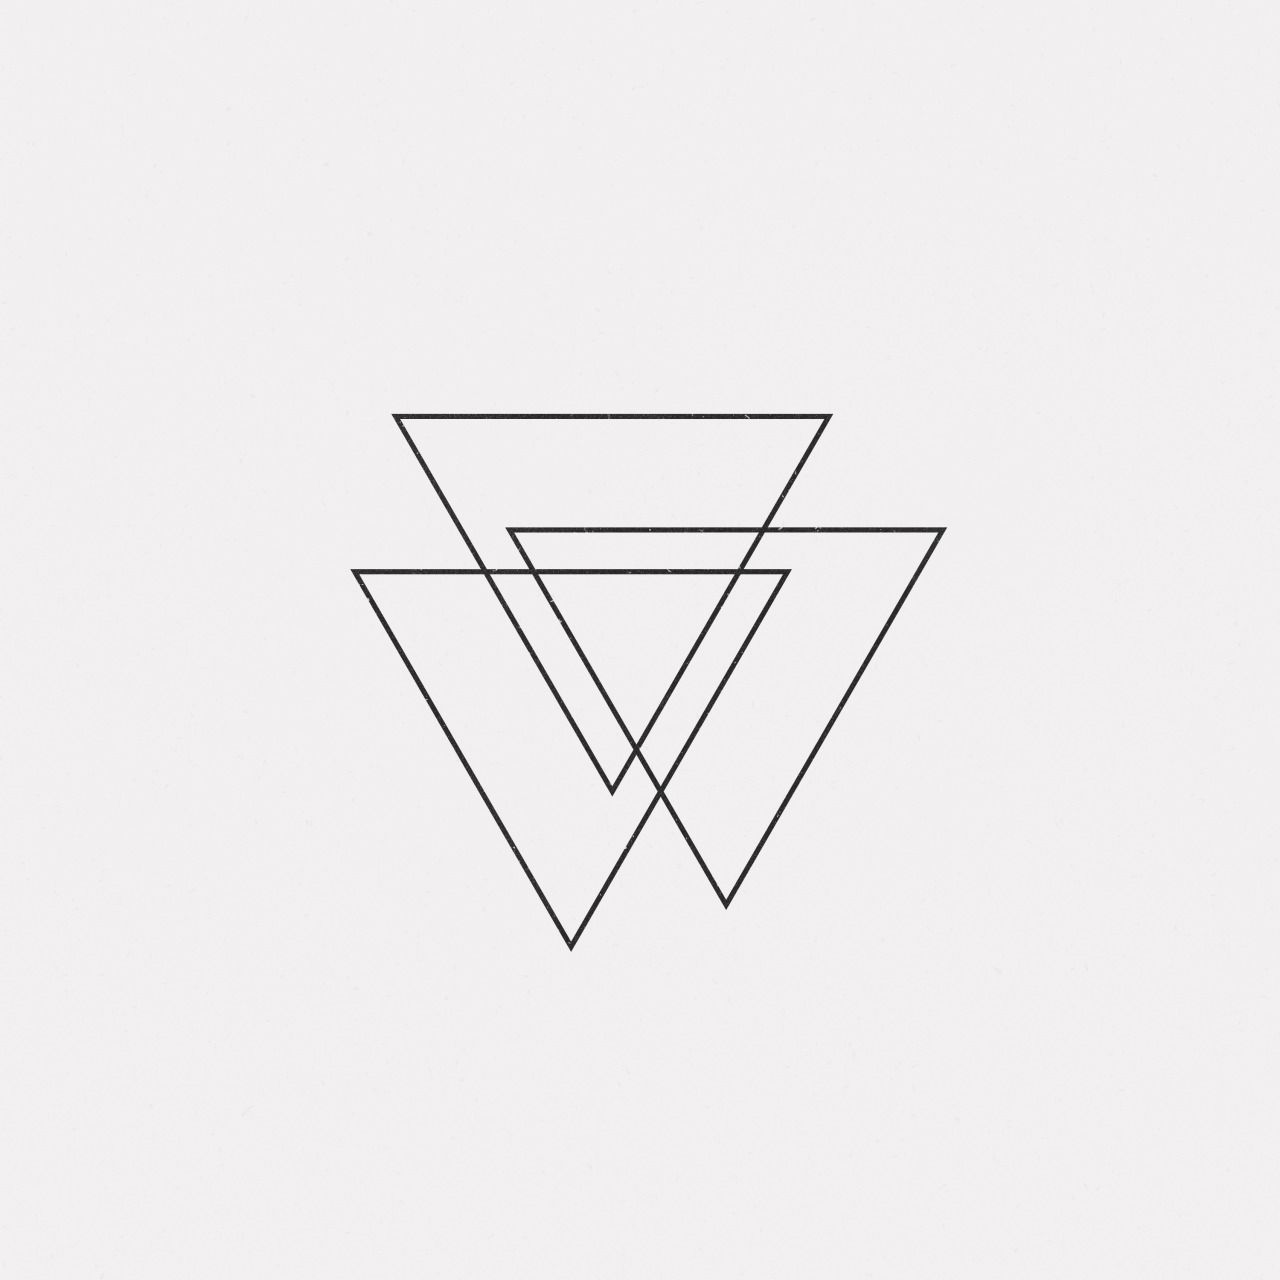 Why You Might Get a geometric Triangle Tattoo design?